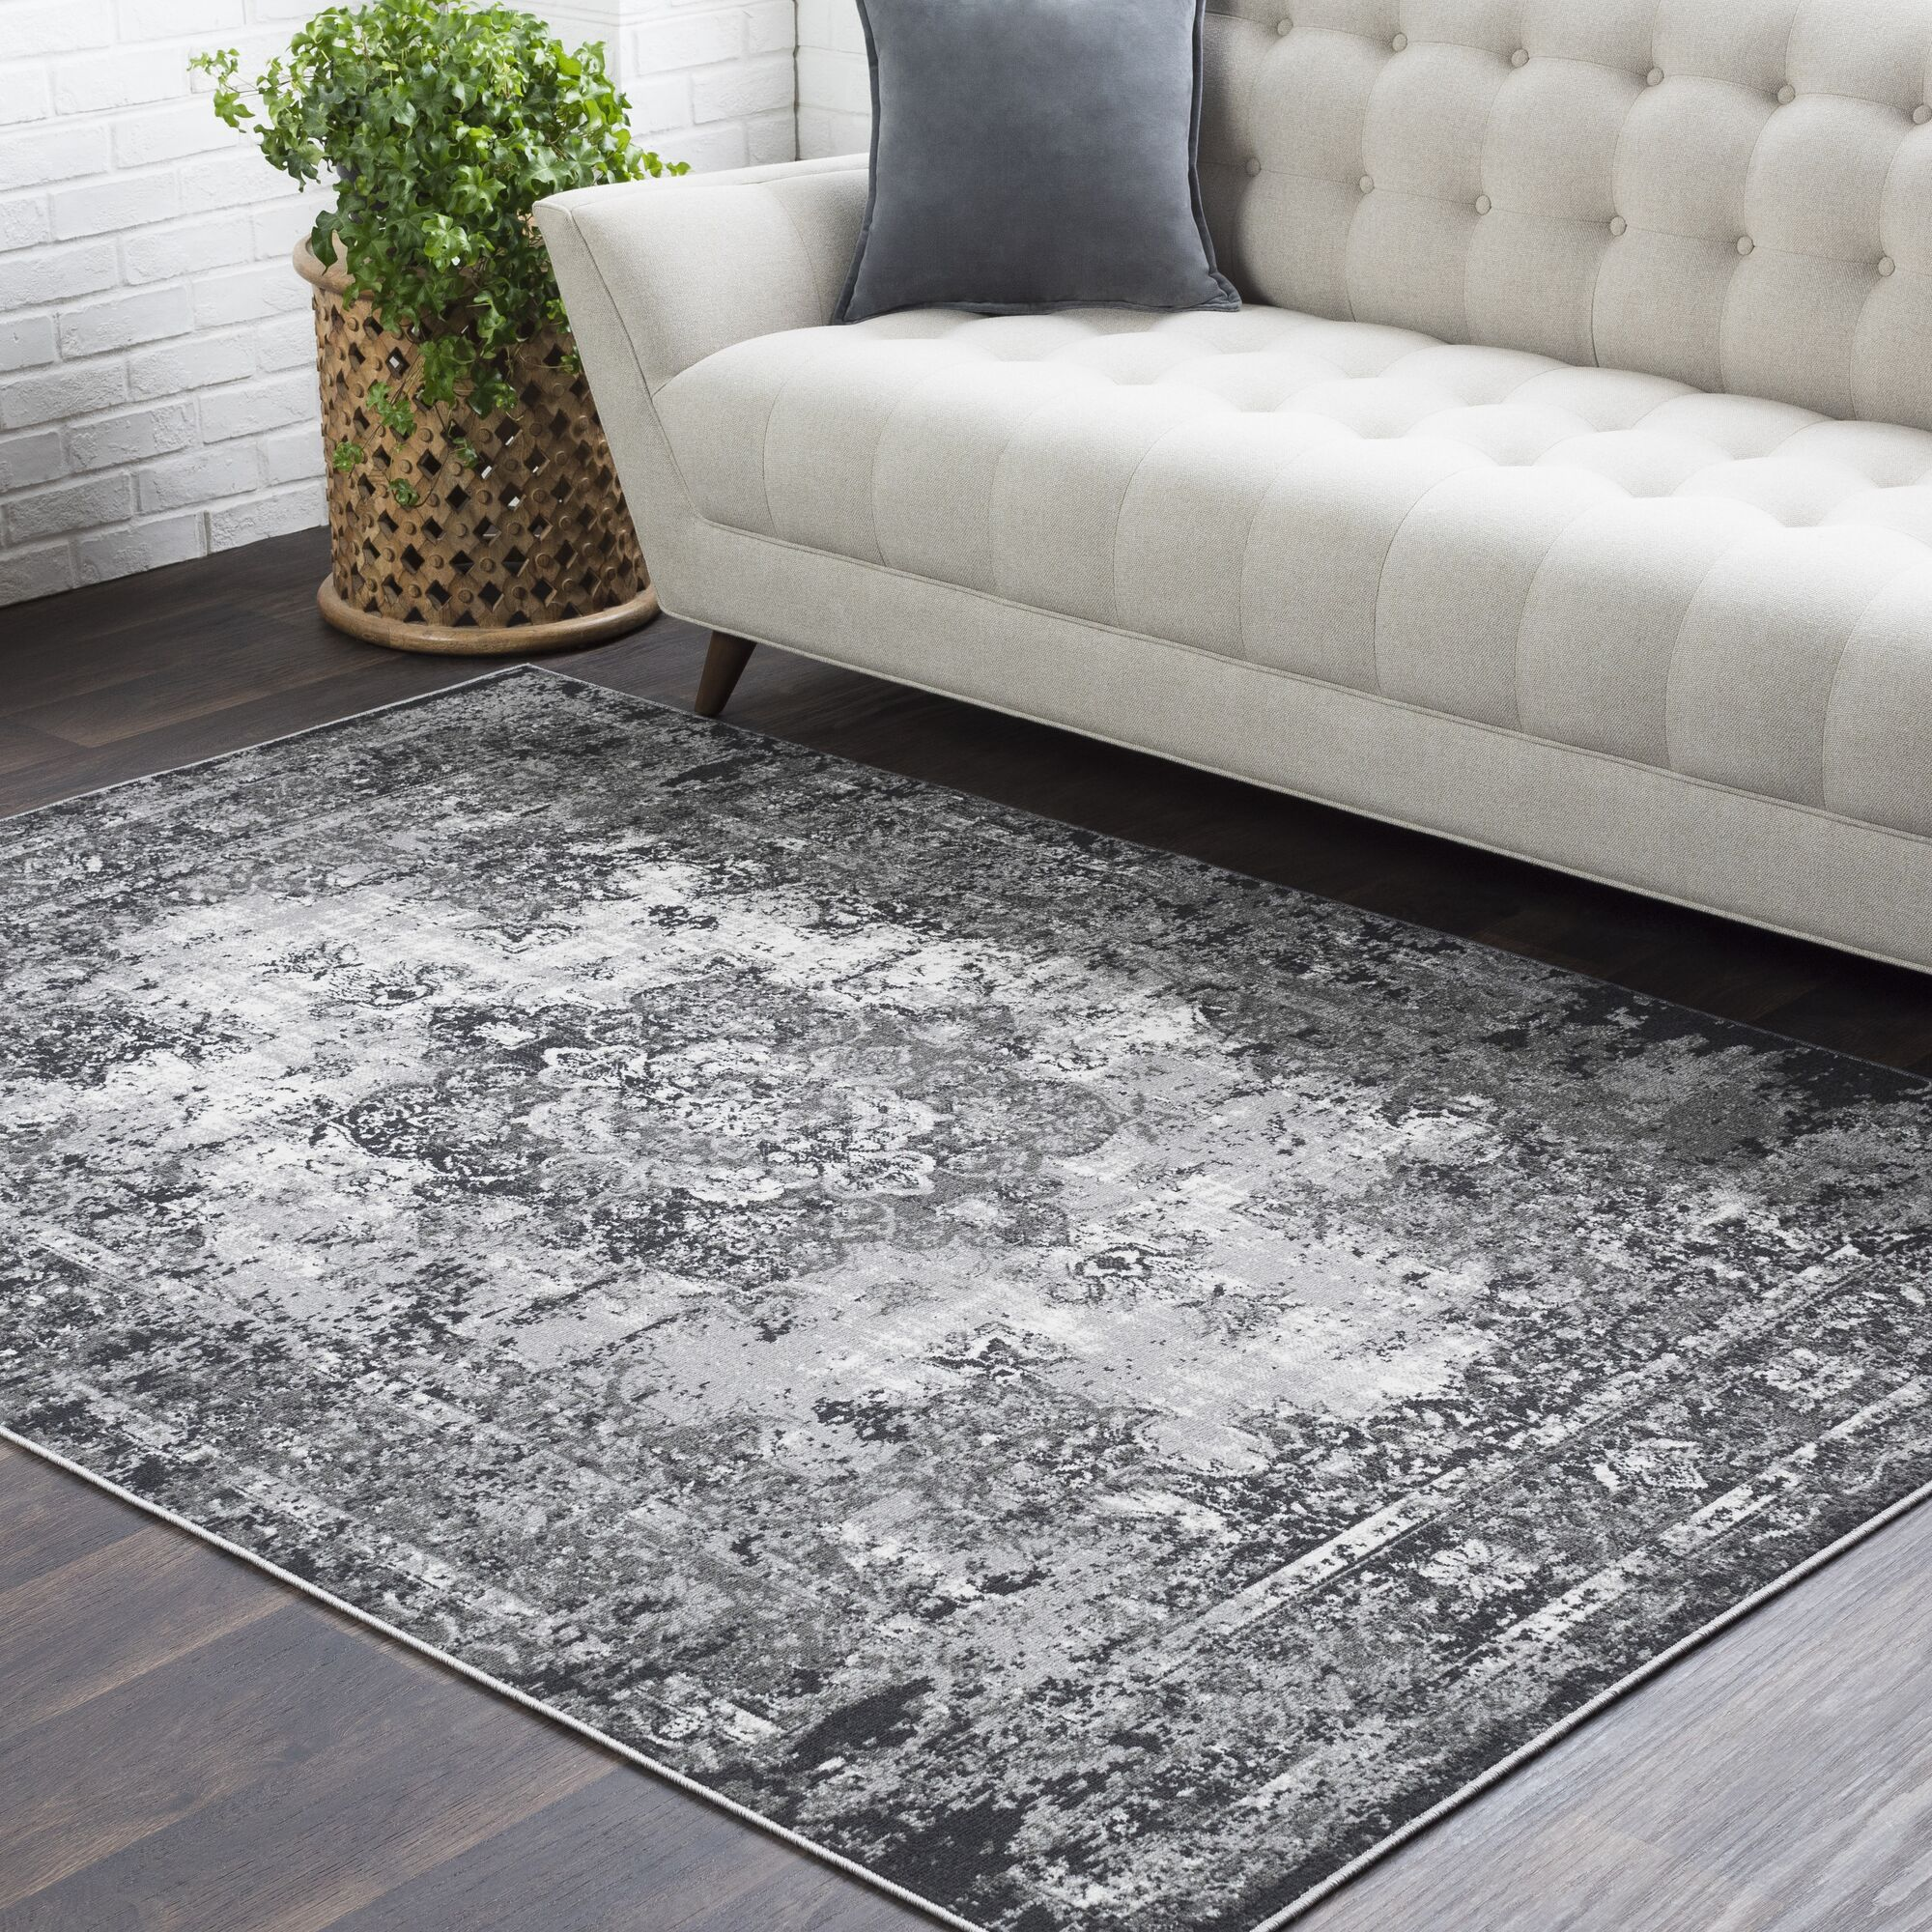 Sharpes Gray/Charcoal Area Rug Rug Size: Rectangle 7'10